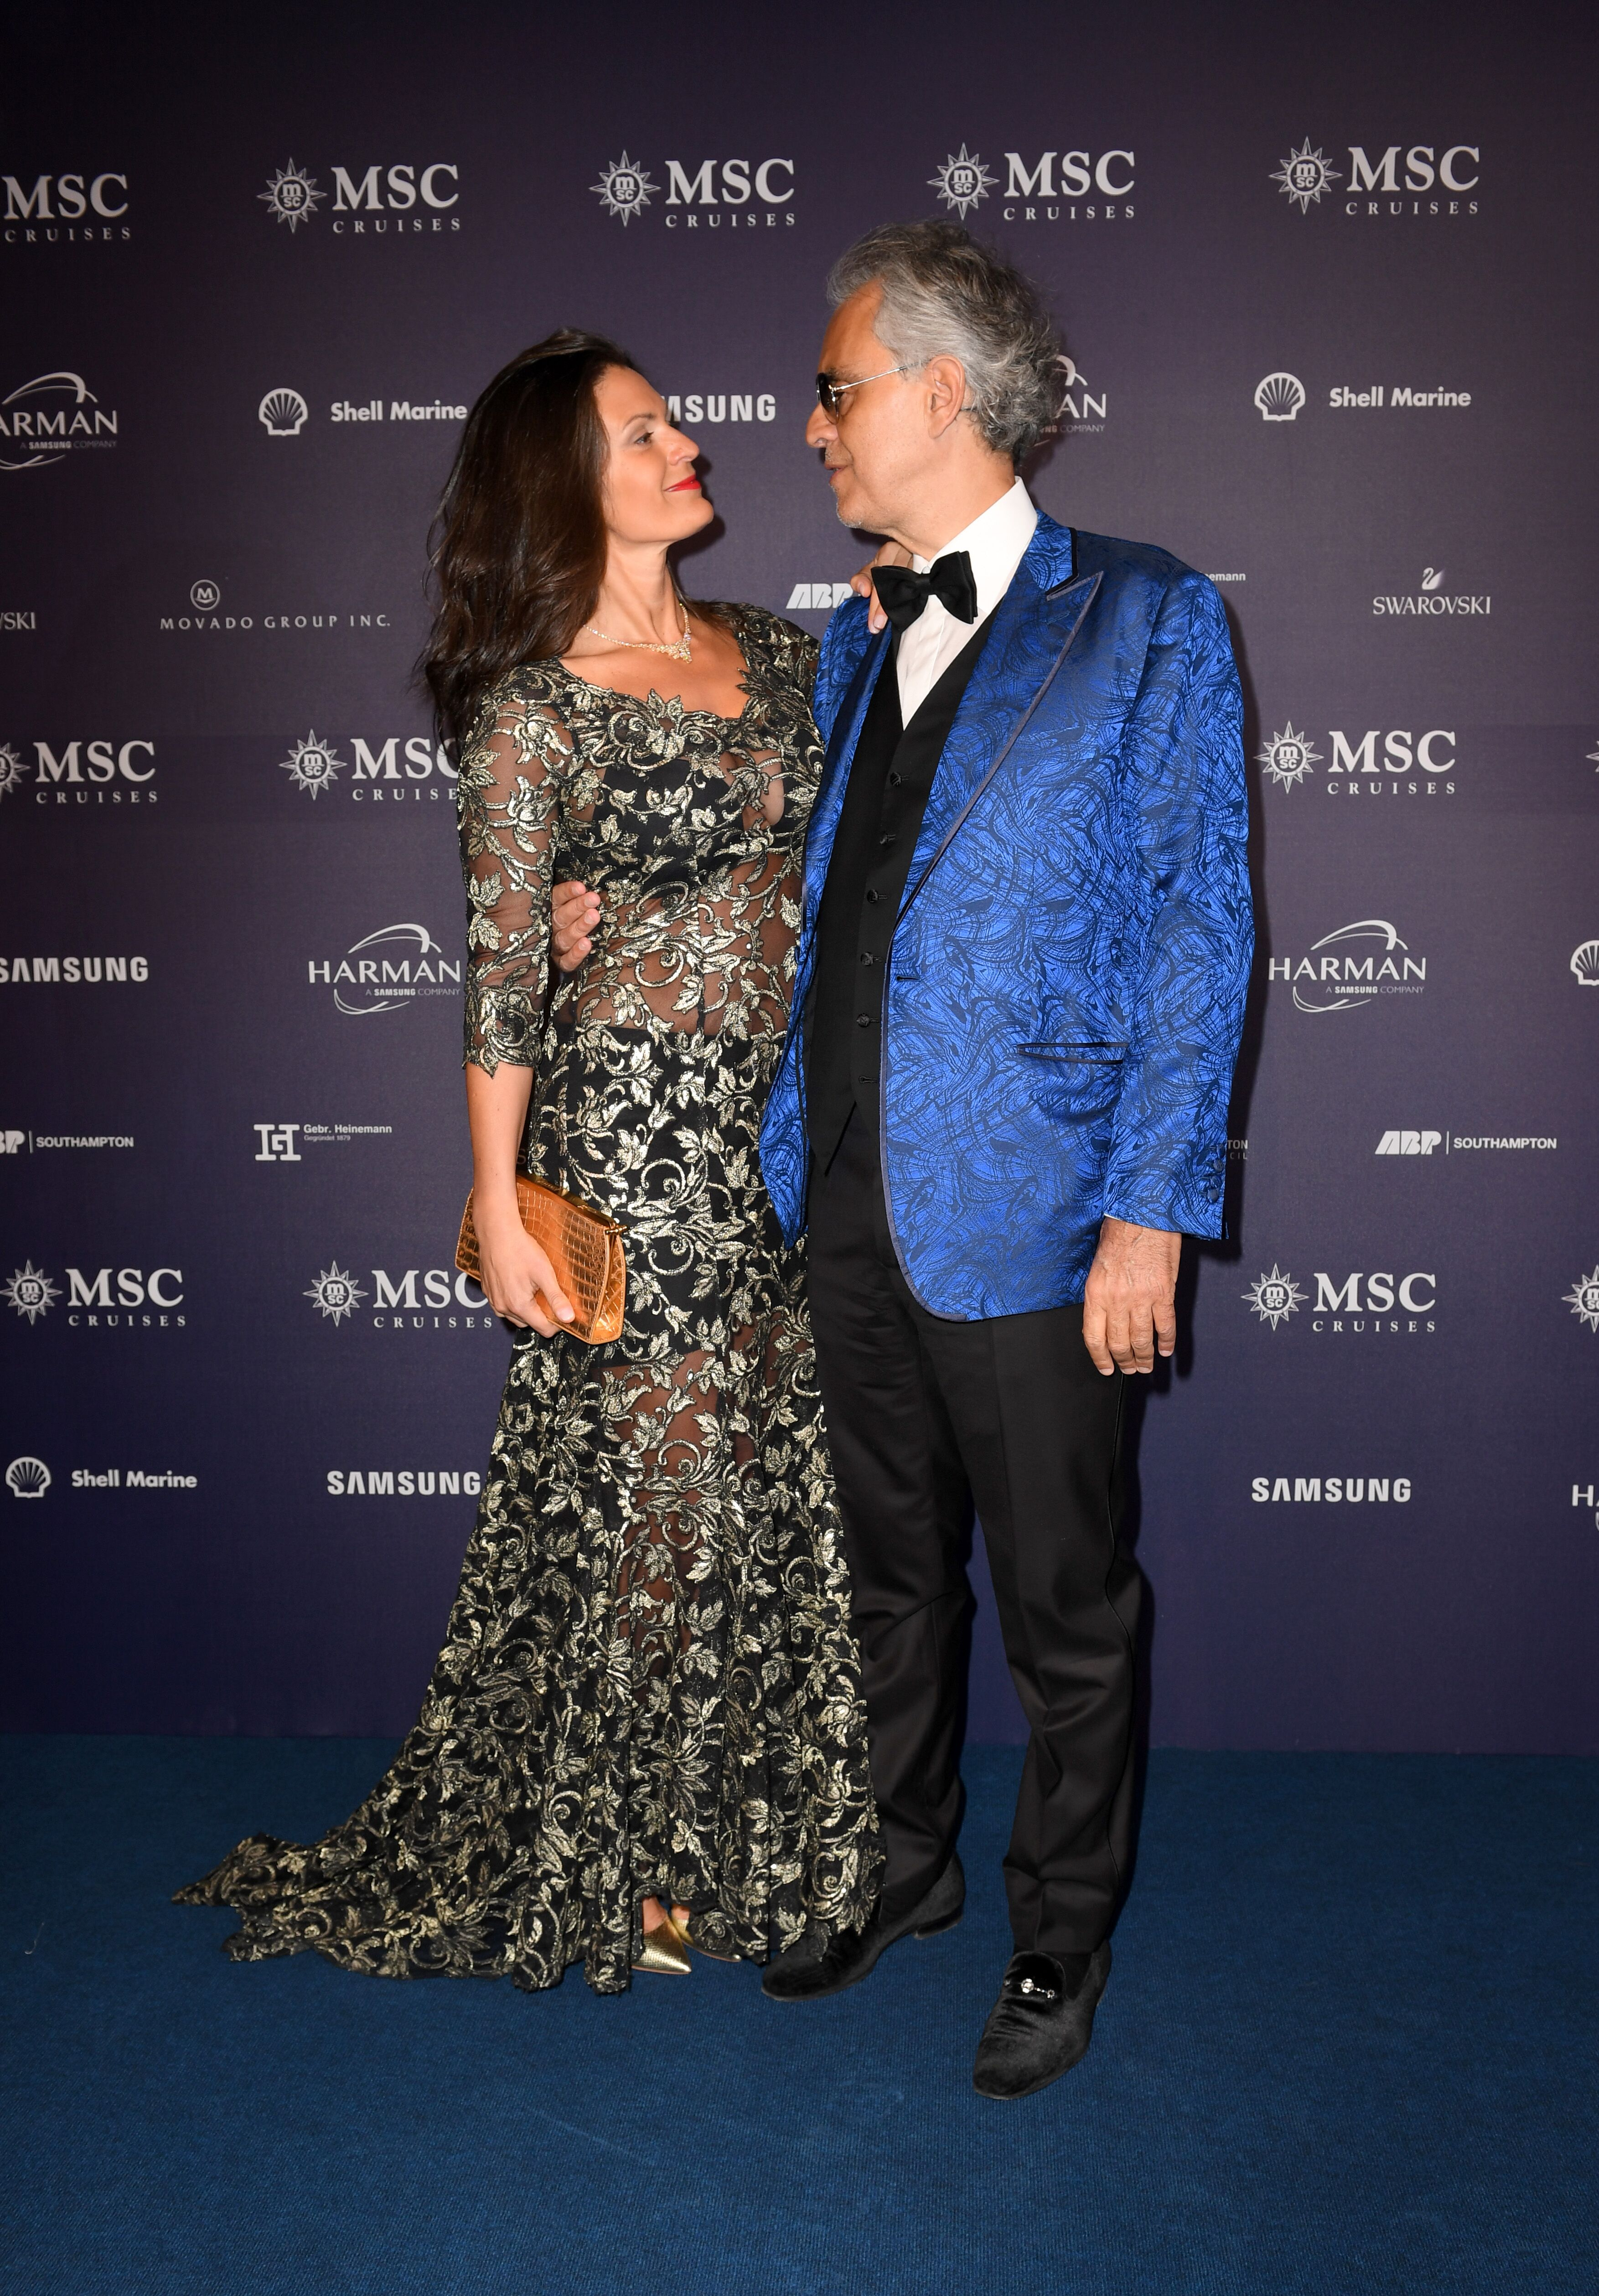 World famous tenor Andrea Bocelli and wife Veronica Berti attend the MSC Bellissima Naming Ceremony | Getty Images / Global Images Ukraine